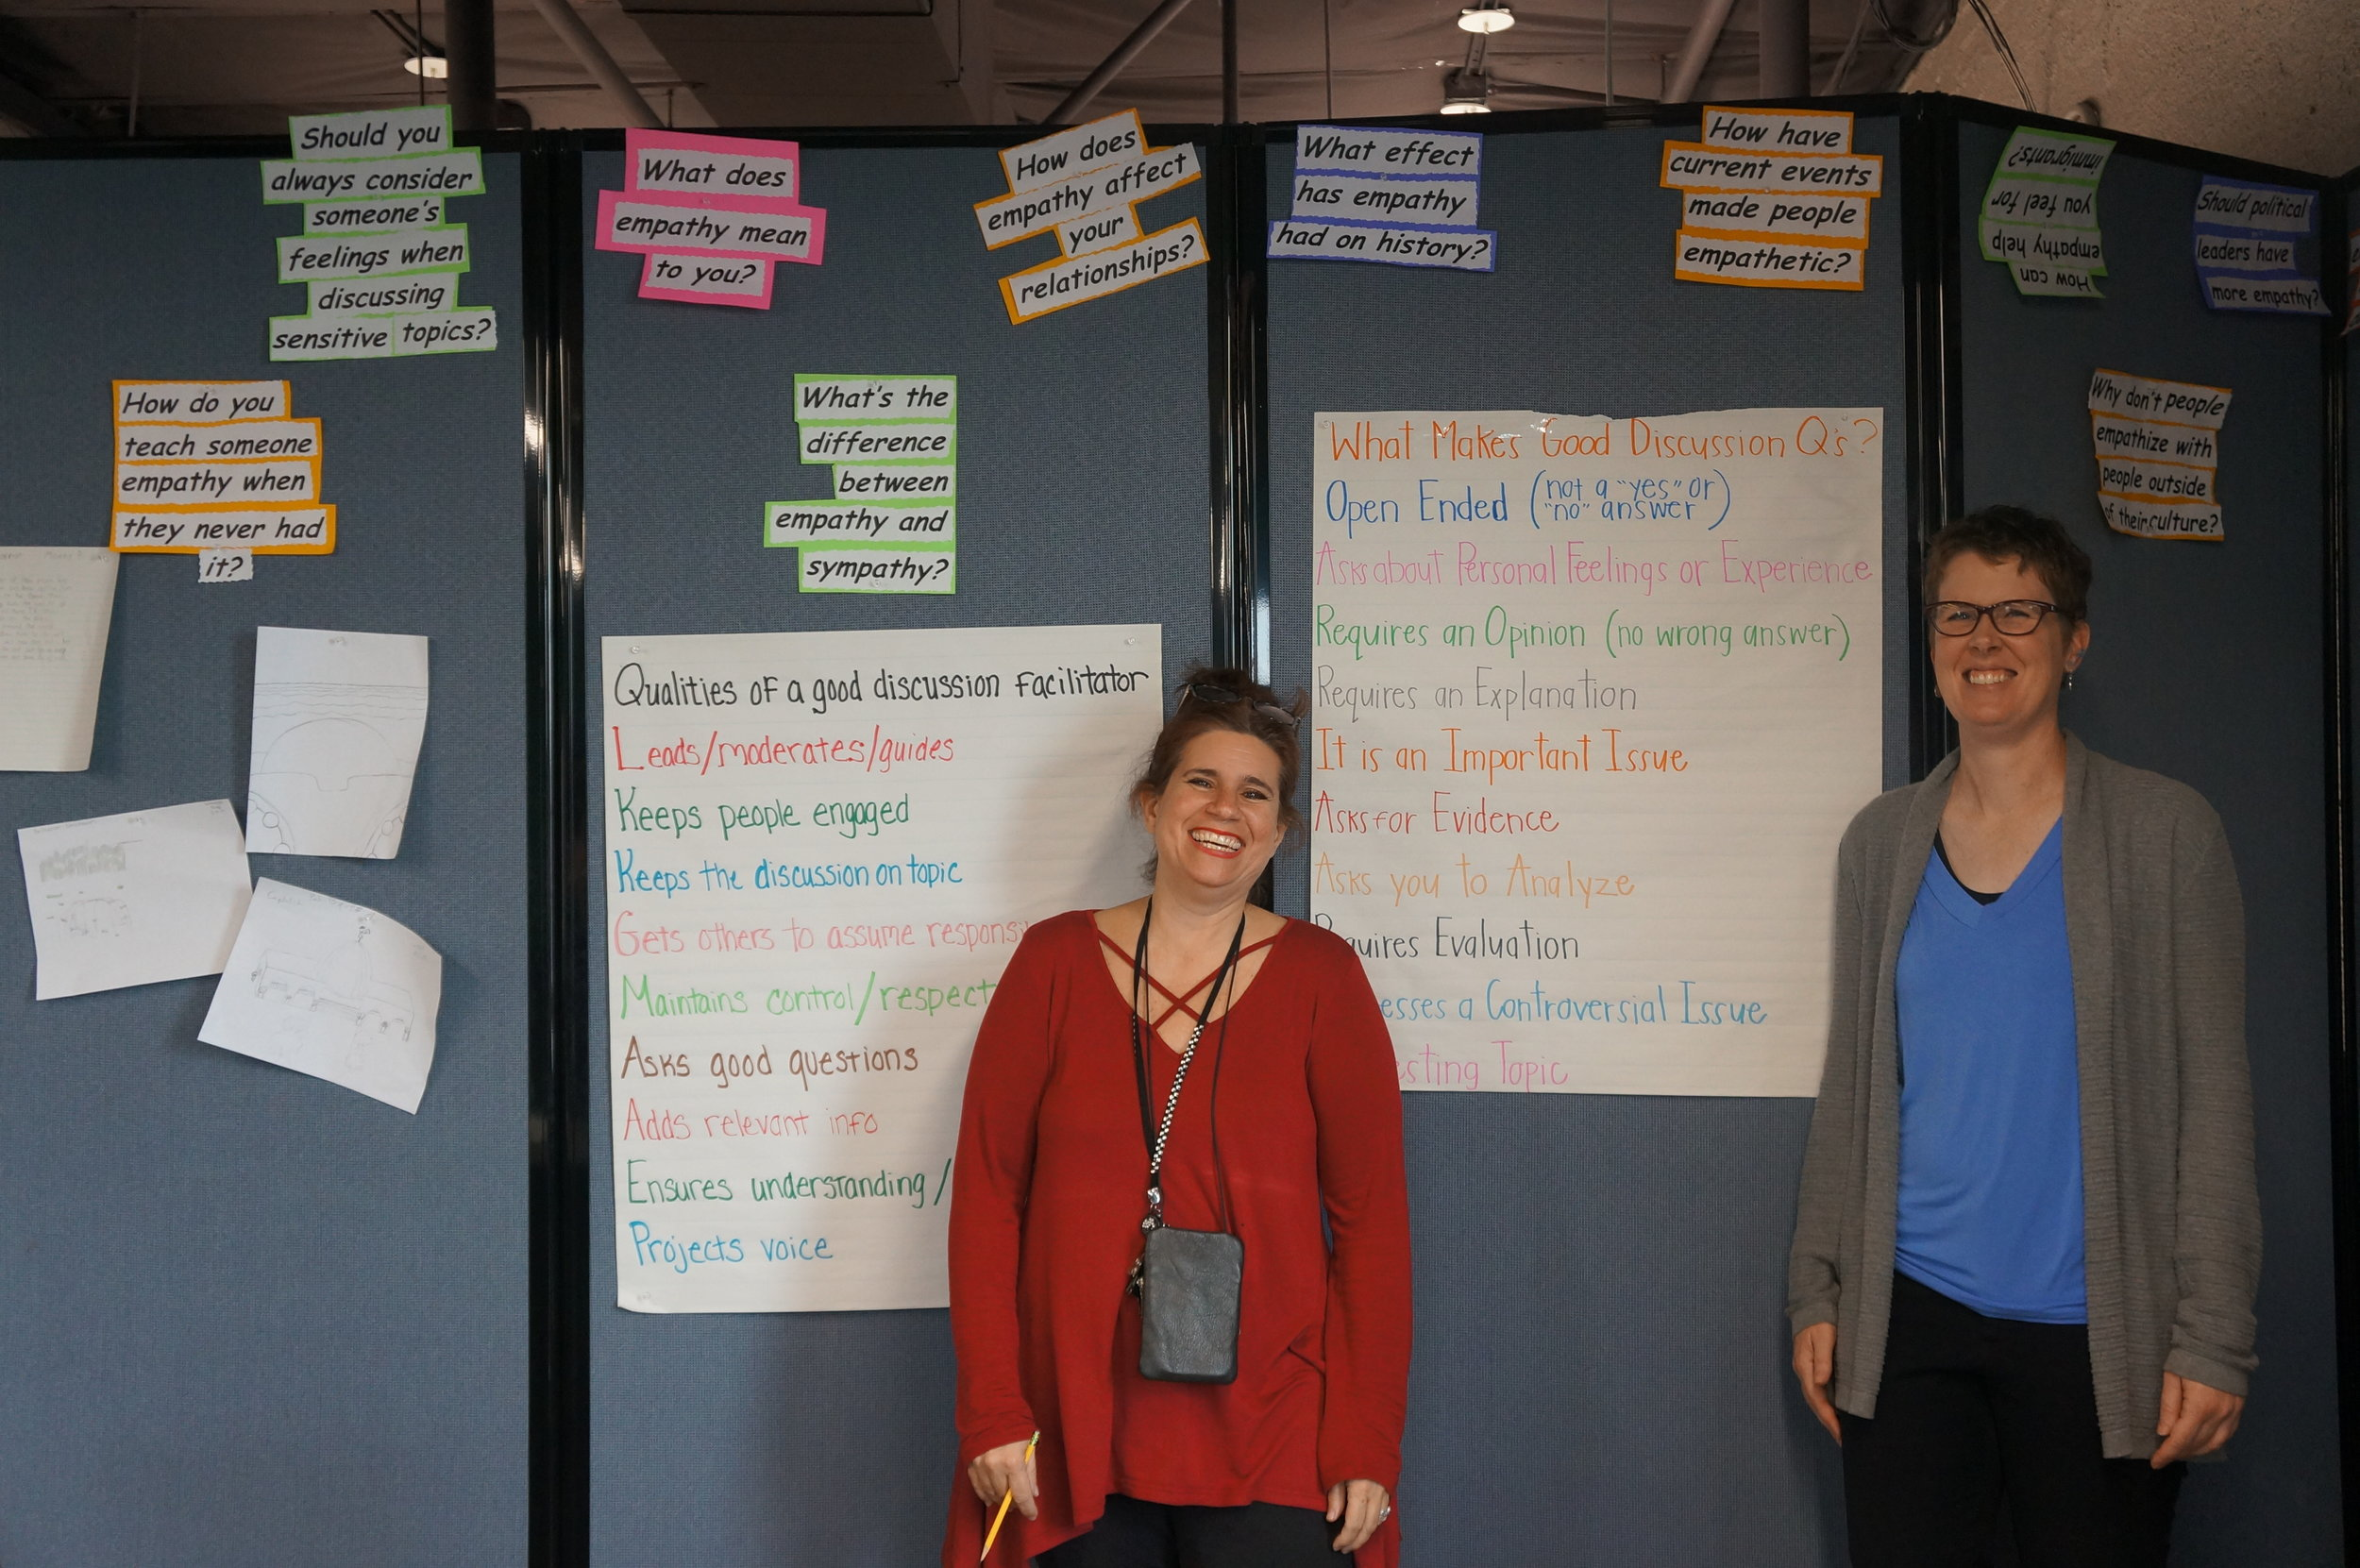 Teachers from the school site 37ECB stand in front of posters about facilitation tips that the students created together. Their semester culminated in a project in which the students were in charge of facilitating discussions.